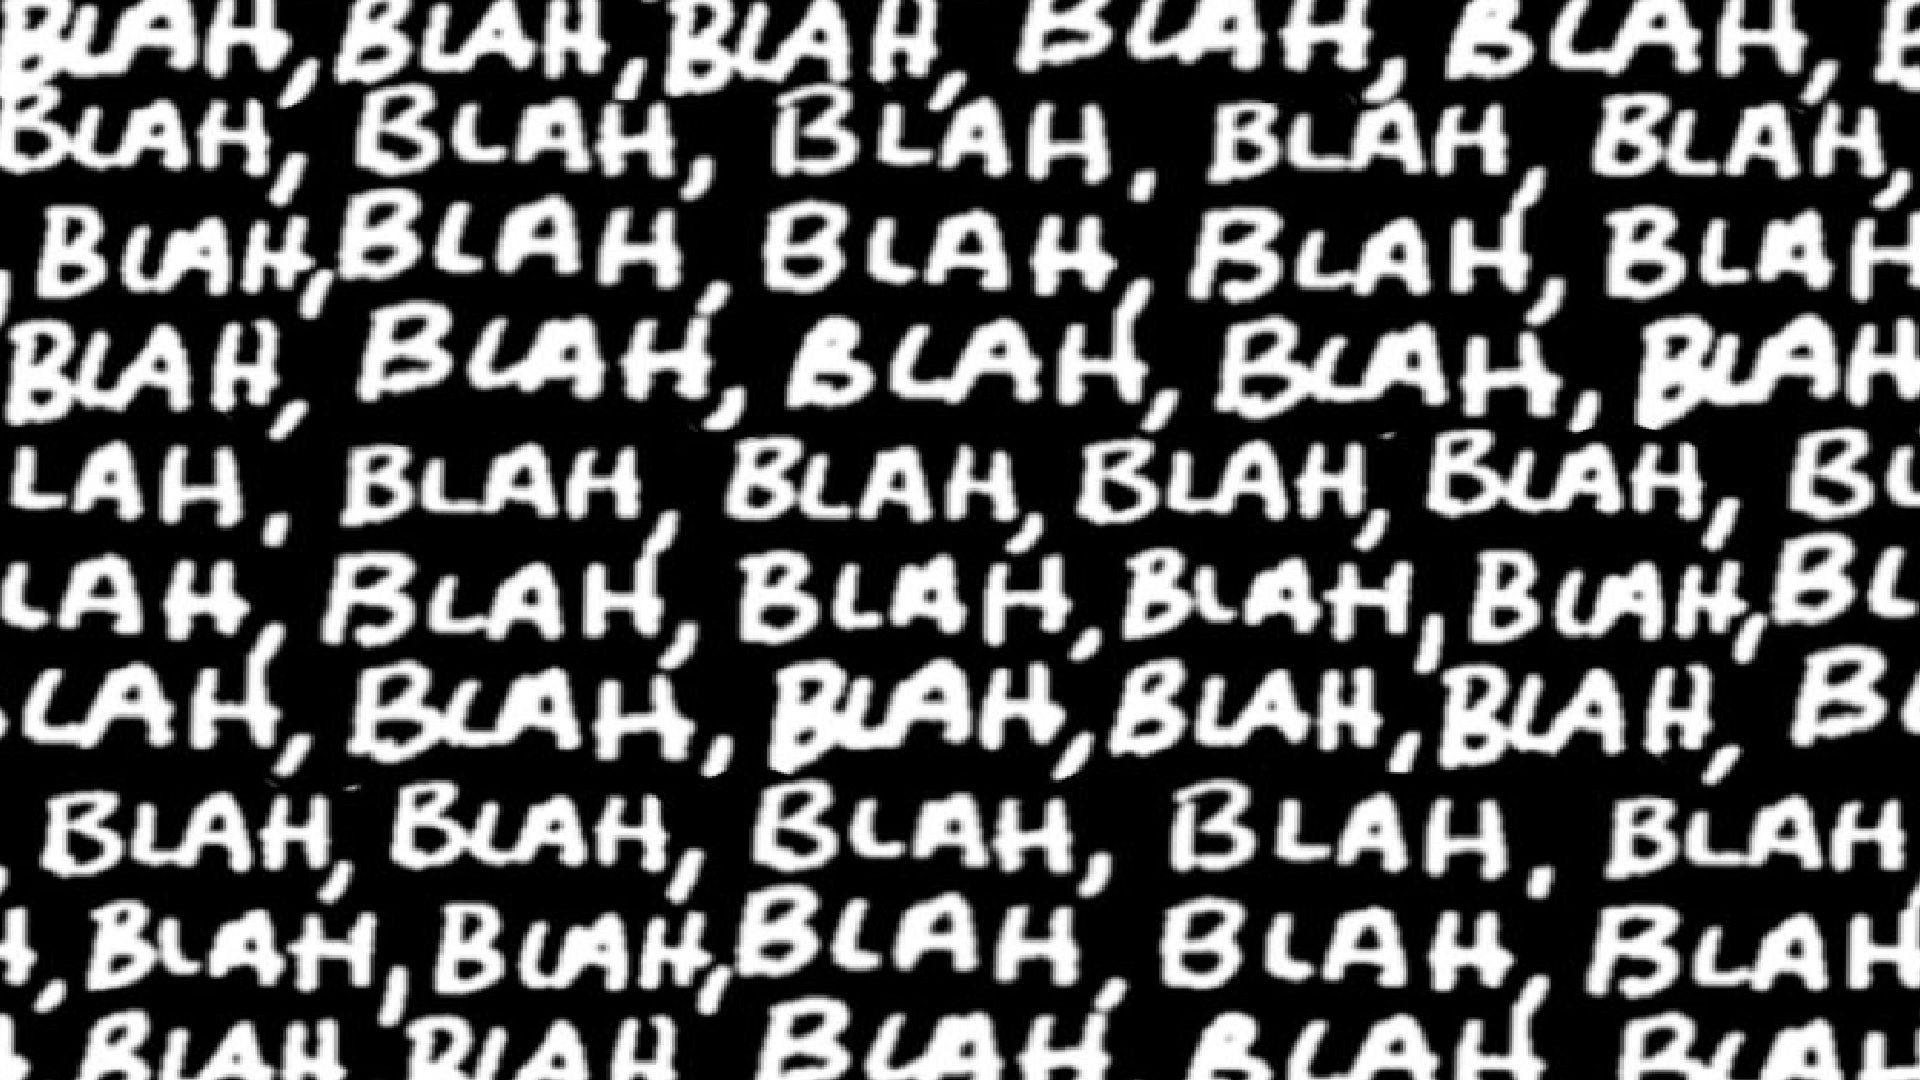 Image result for blah blah blah blah